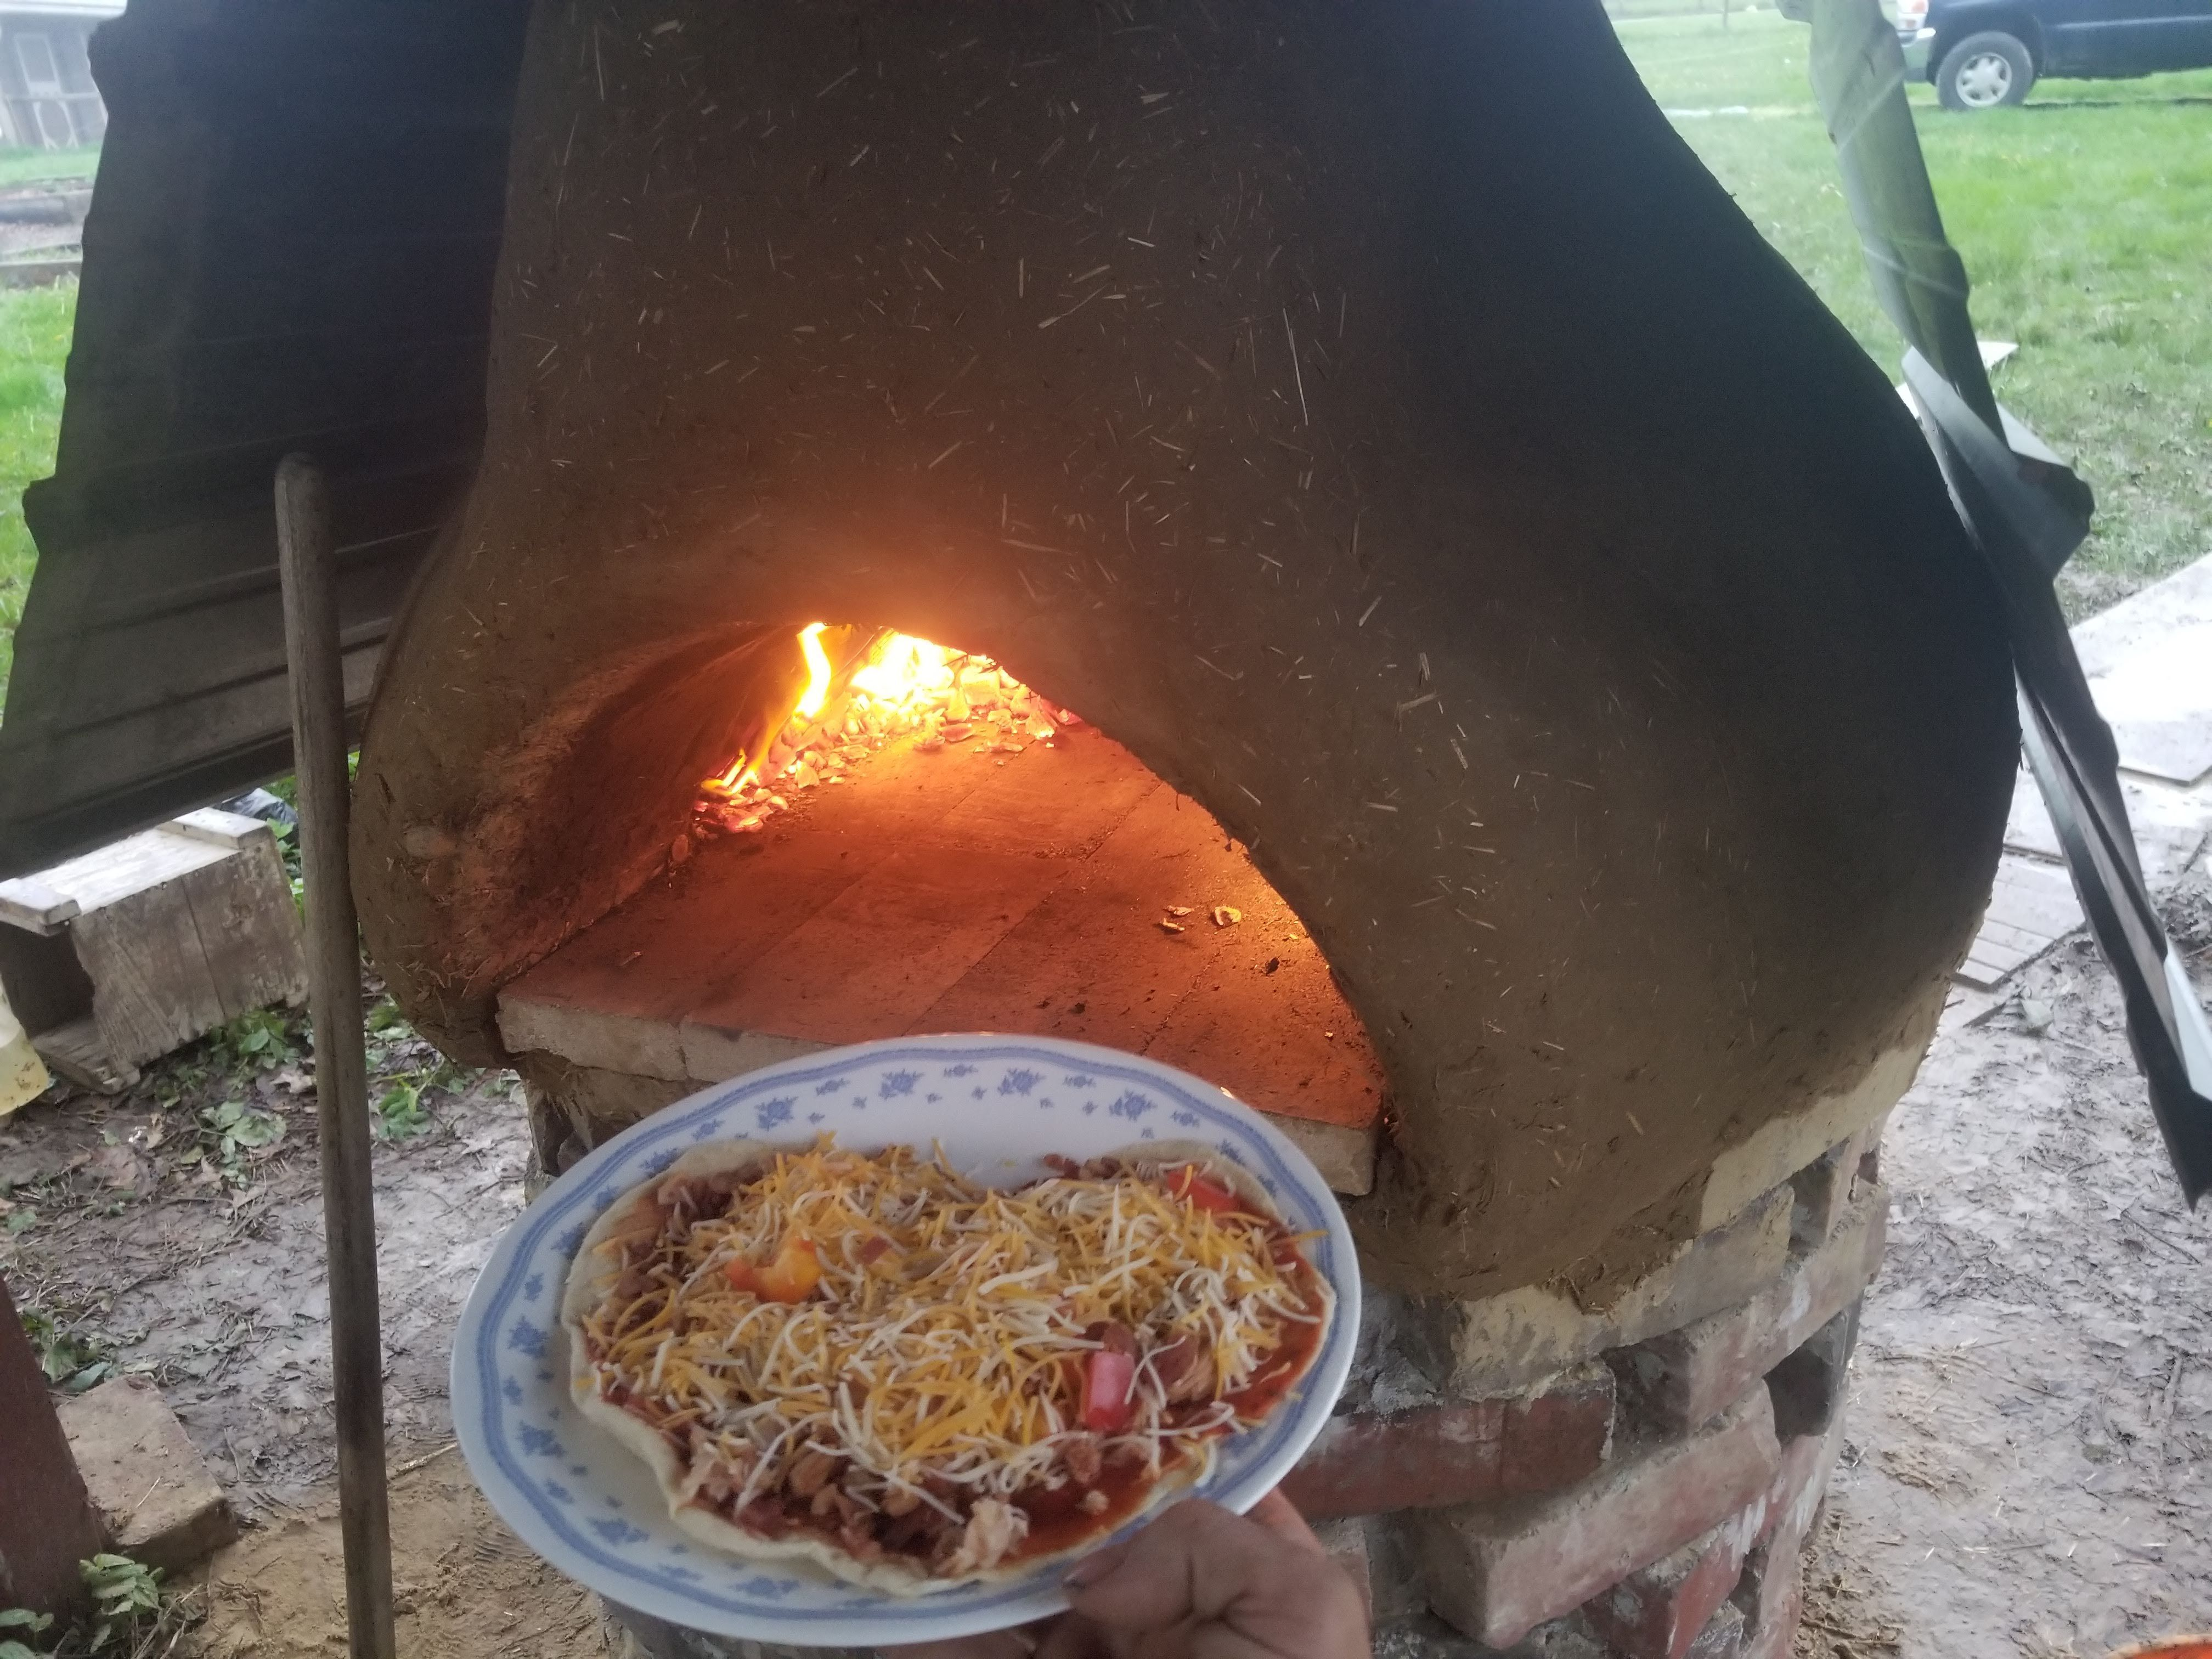 Throwing the pizza into the earthen cob oven